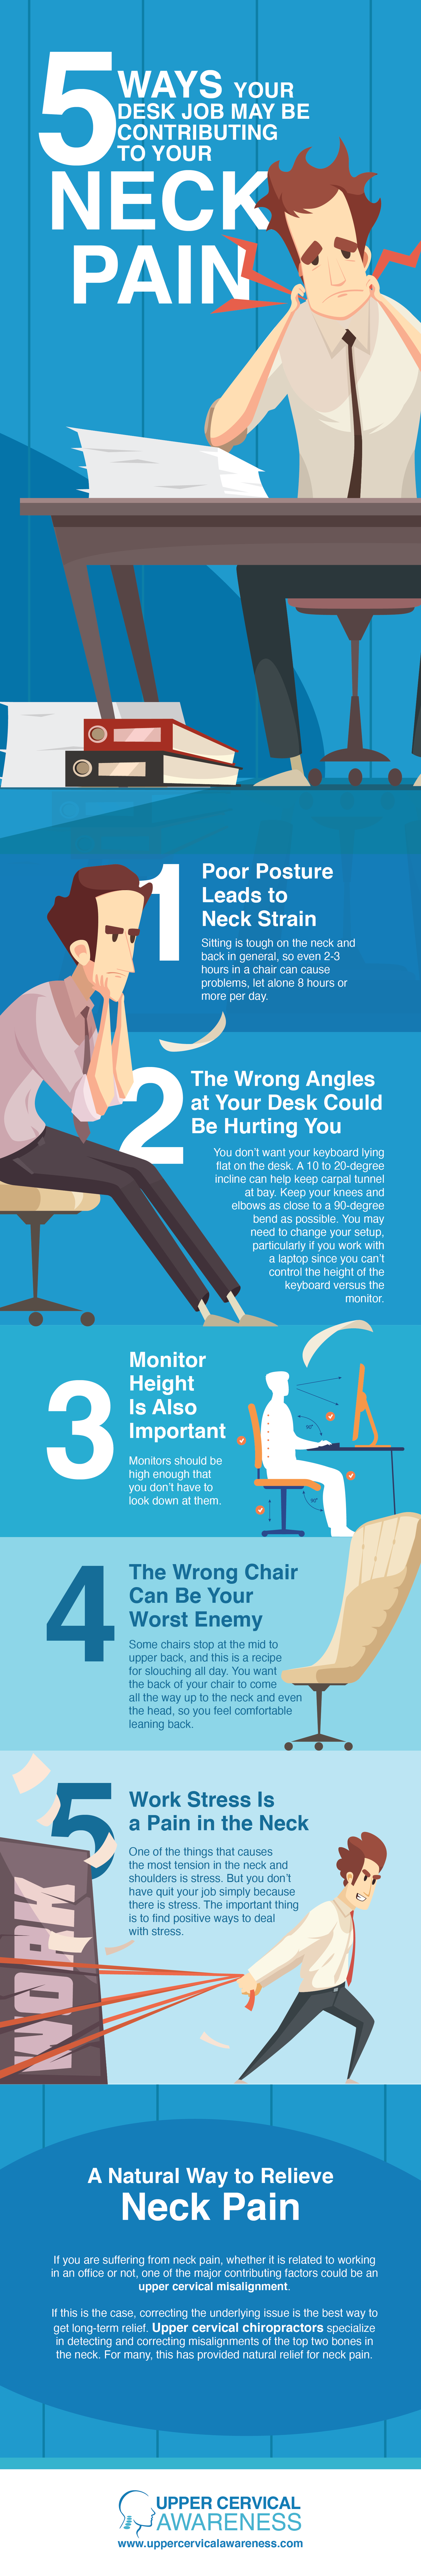 5 Ways Your Desk Job May Be Contributing to Neck Pain